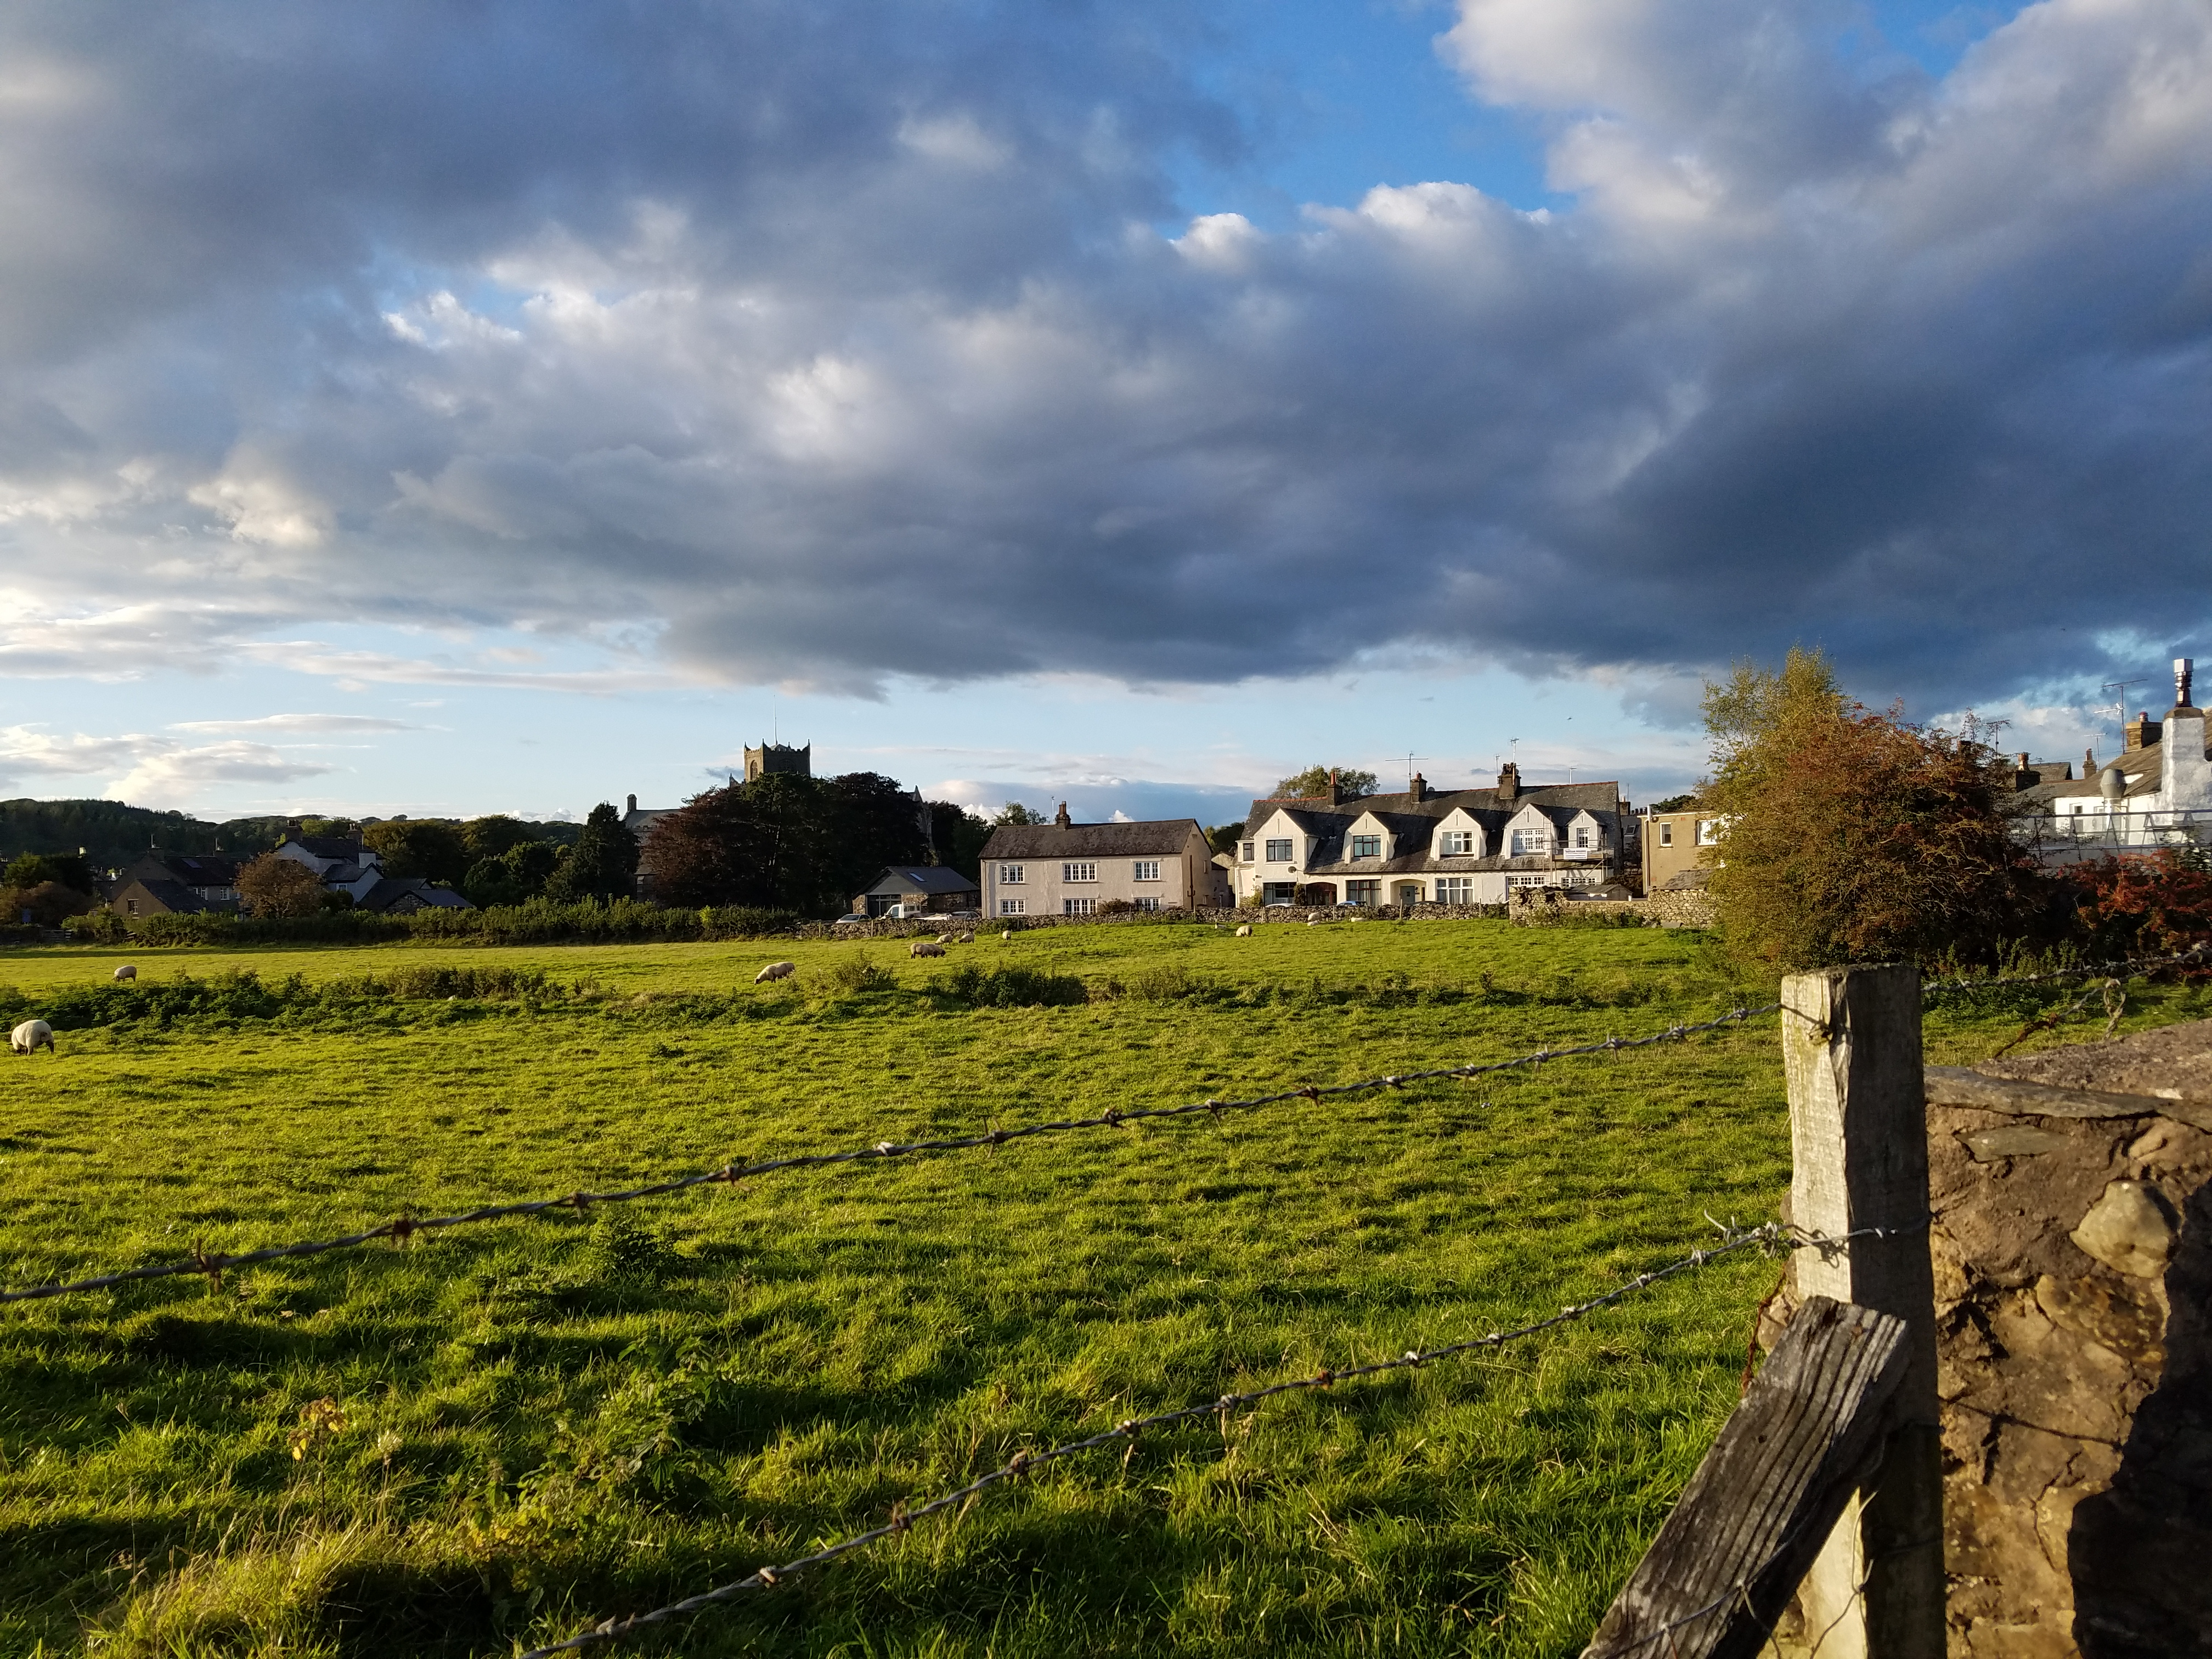 England – The Medieval Village of Cartmel